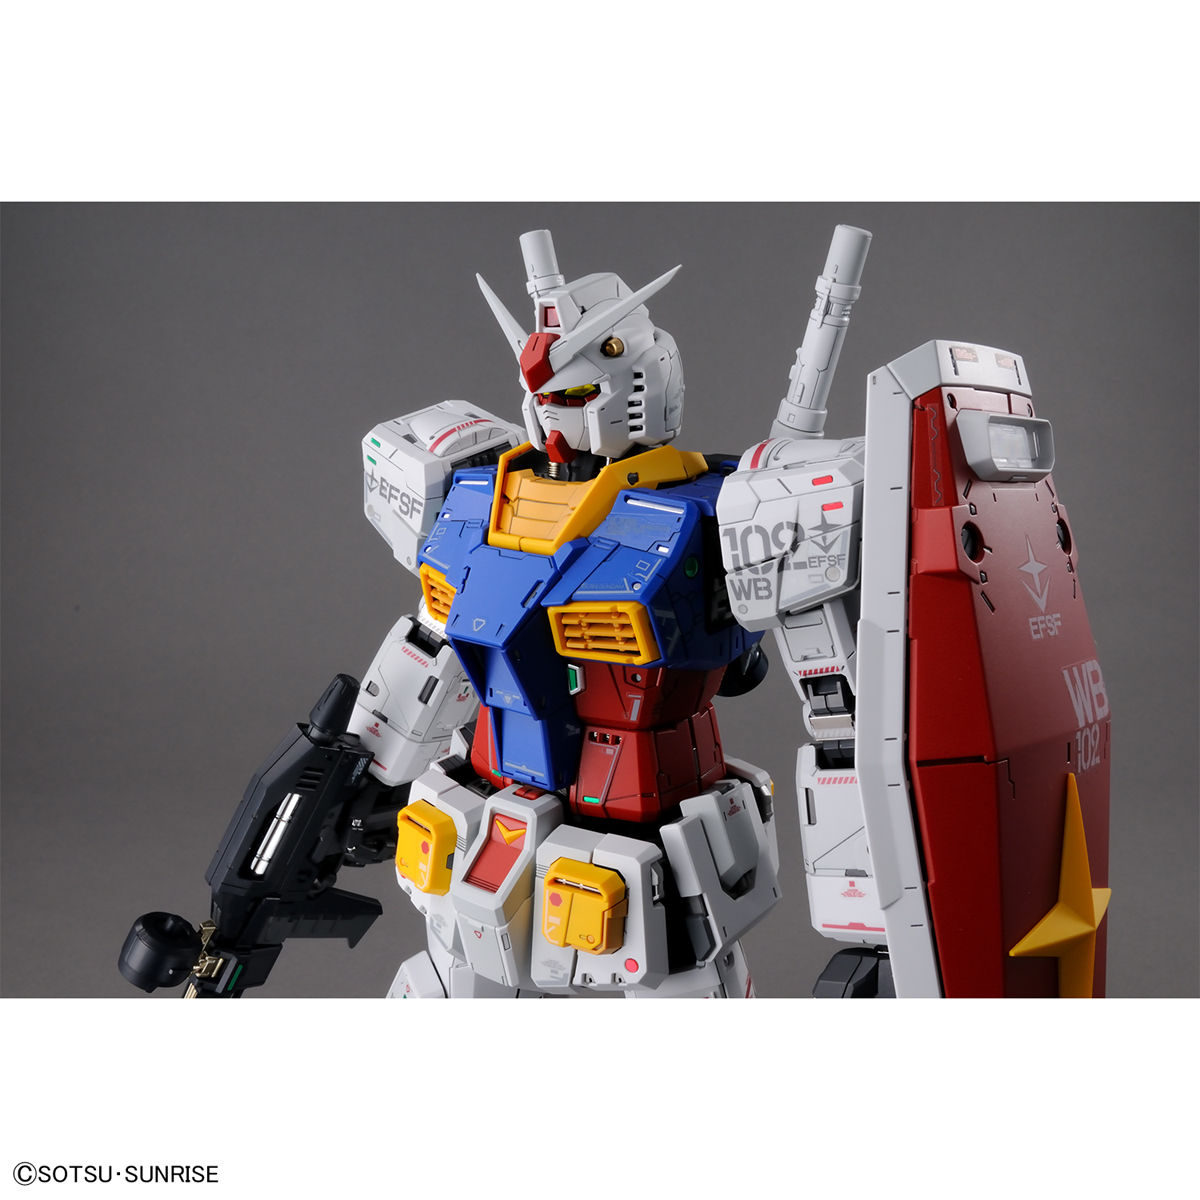 PG UNLEASHED 1/60 RX-78-2 ガンダム 03